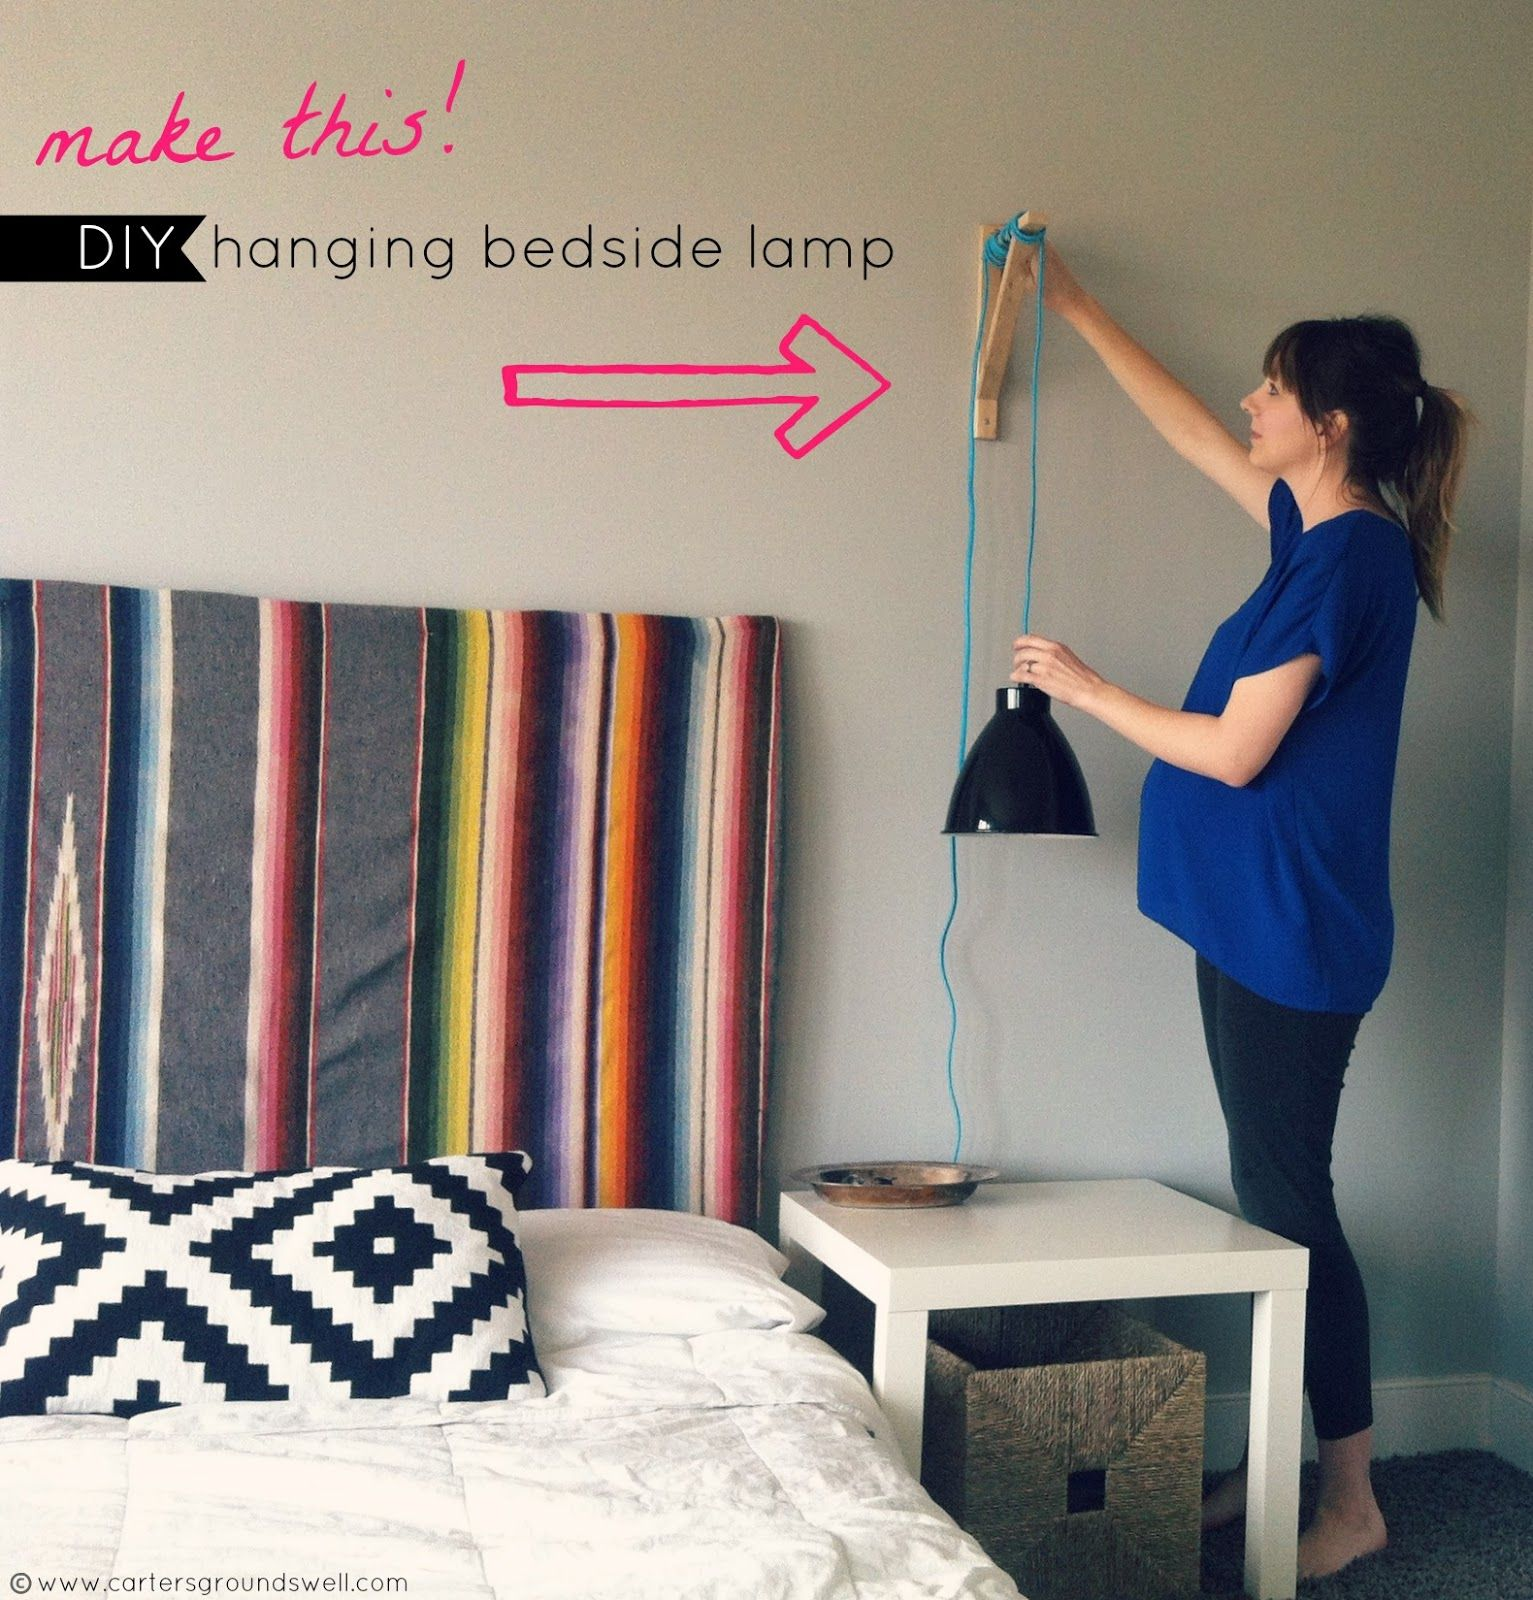 Diy Hanging Bedside Lamp Don T Love The Bracket But The Lamp